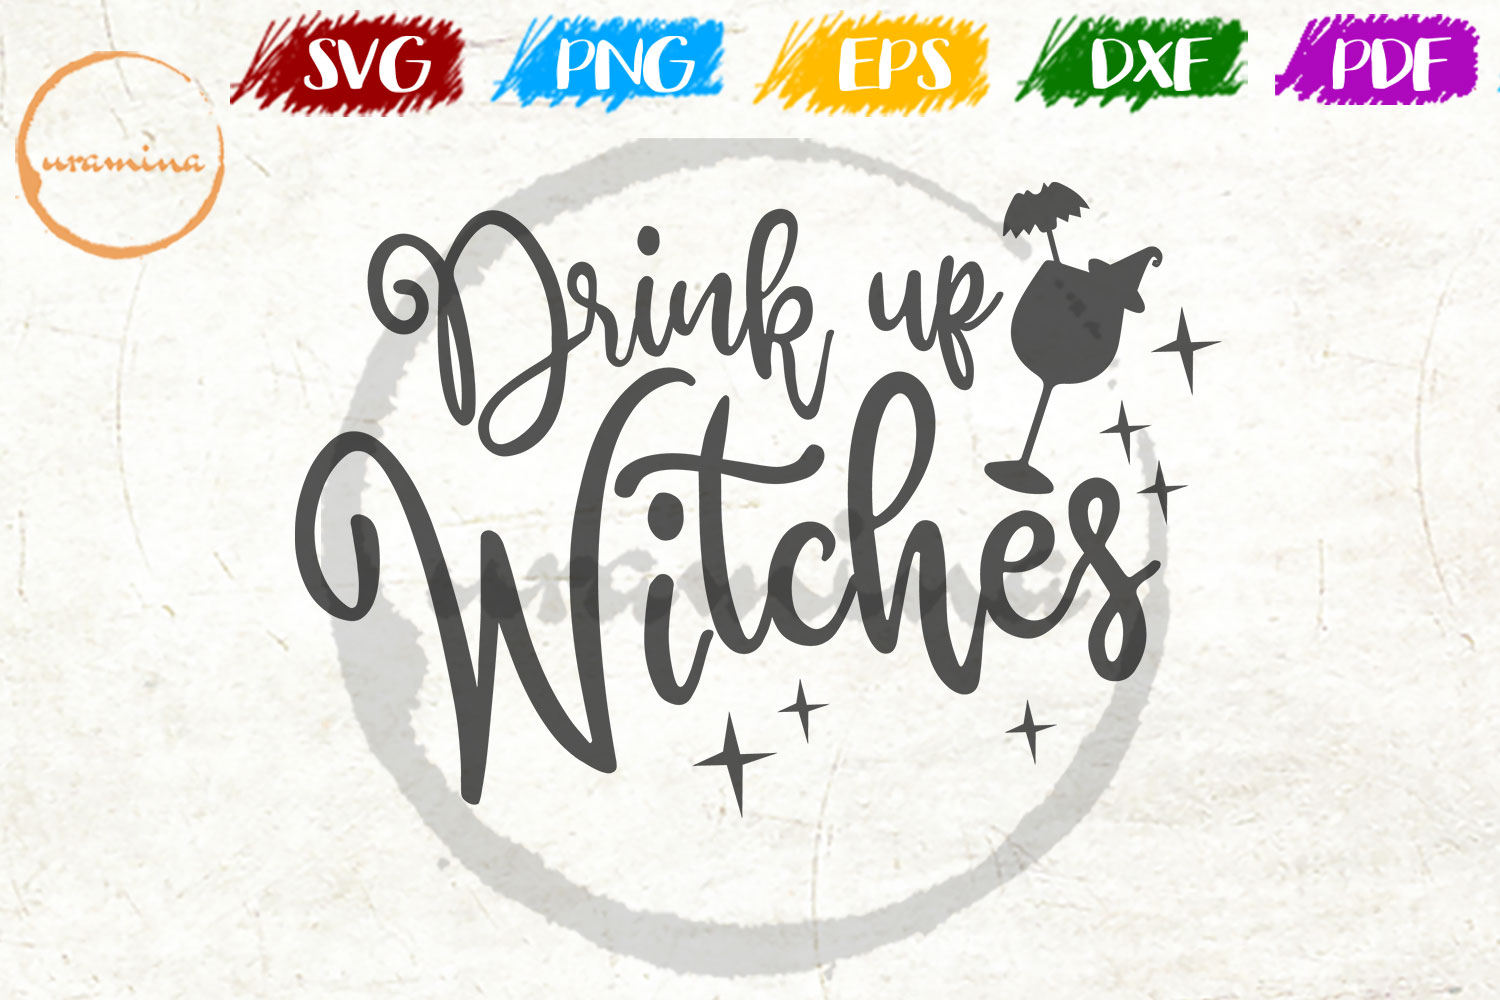 Download Free Drink Up Witches Graphic By Uramina Creative Fabrica for Cricut Explore, Silhouette and other cutting machines.